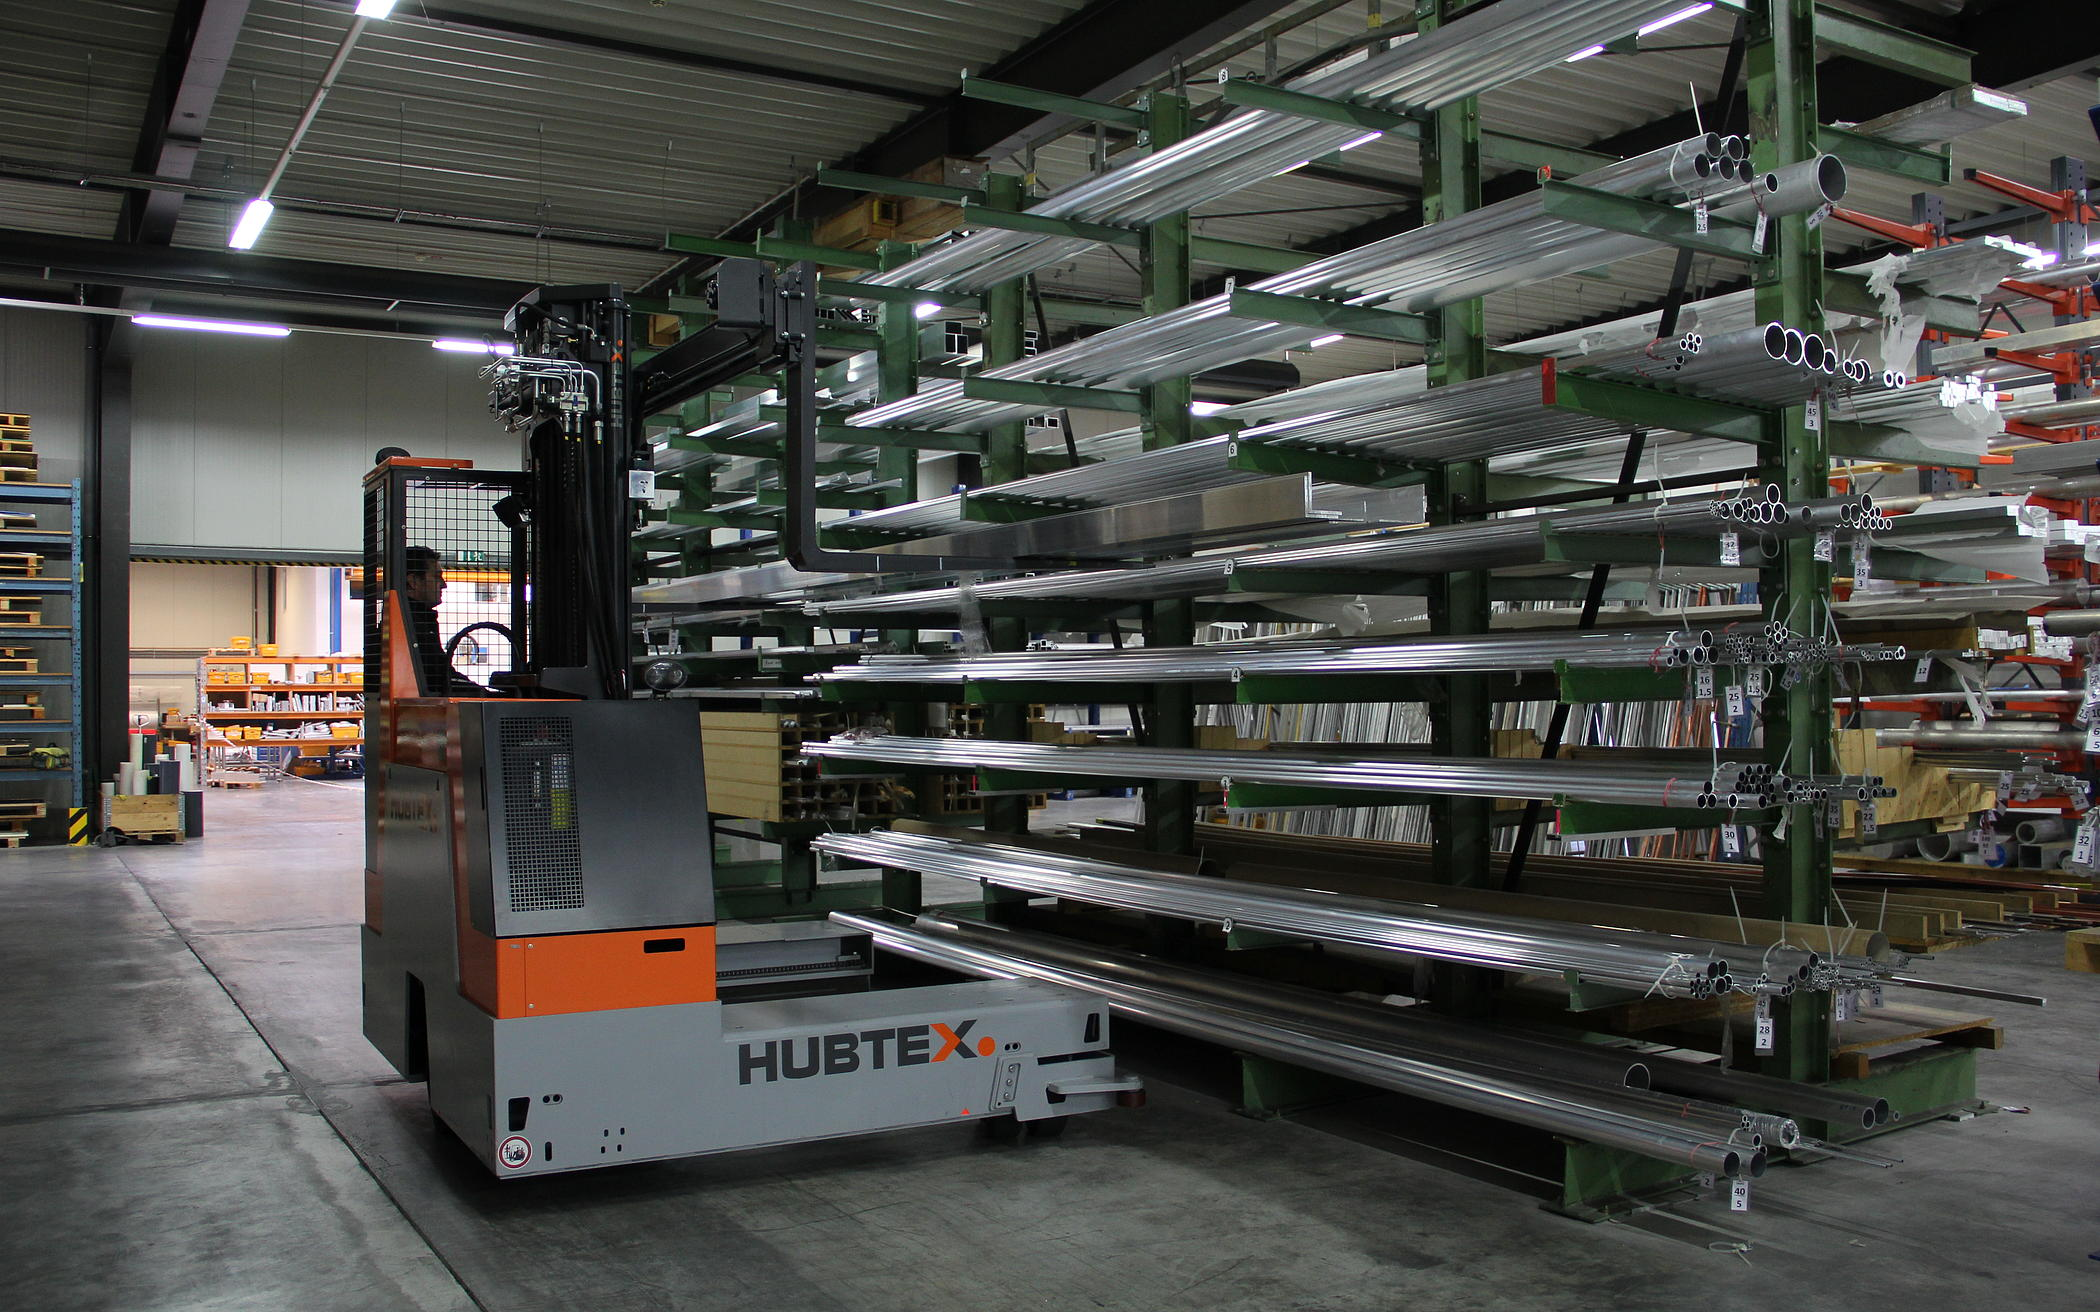 the HUBTEX EASY multidirectional sideloader being used to pick up long goads